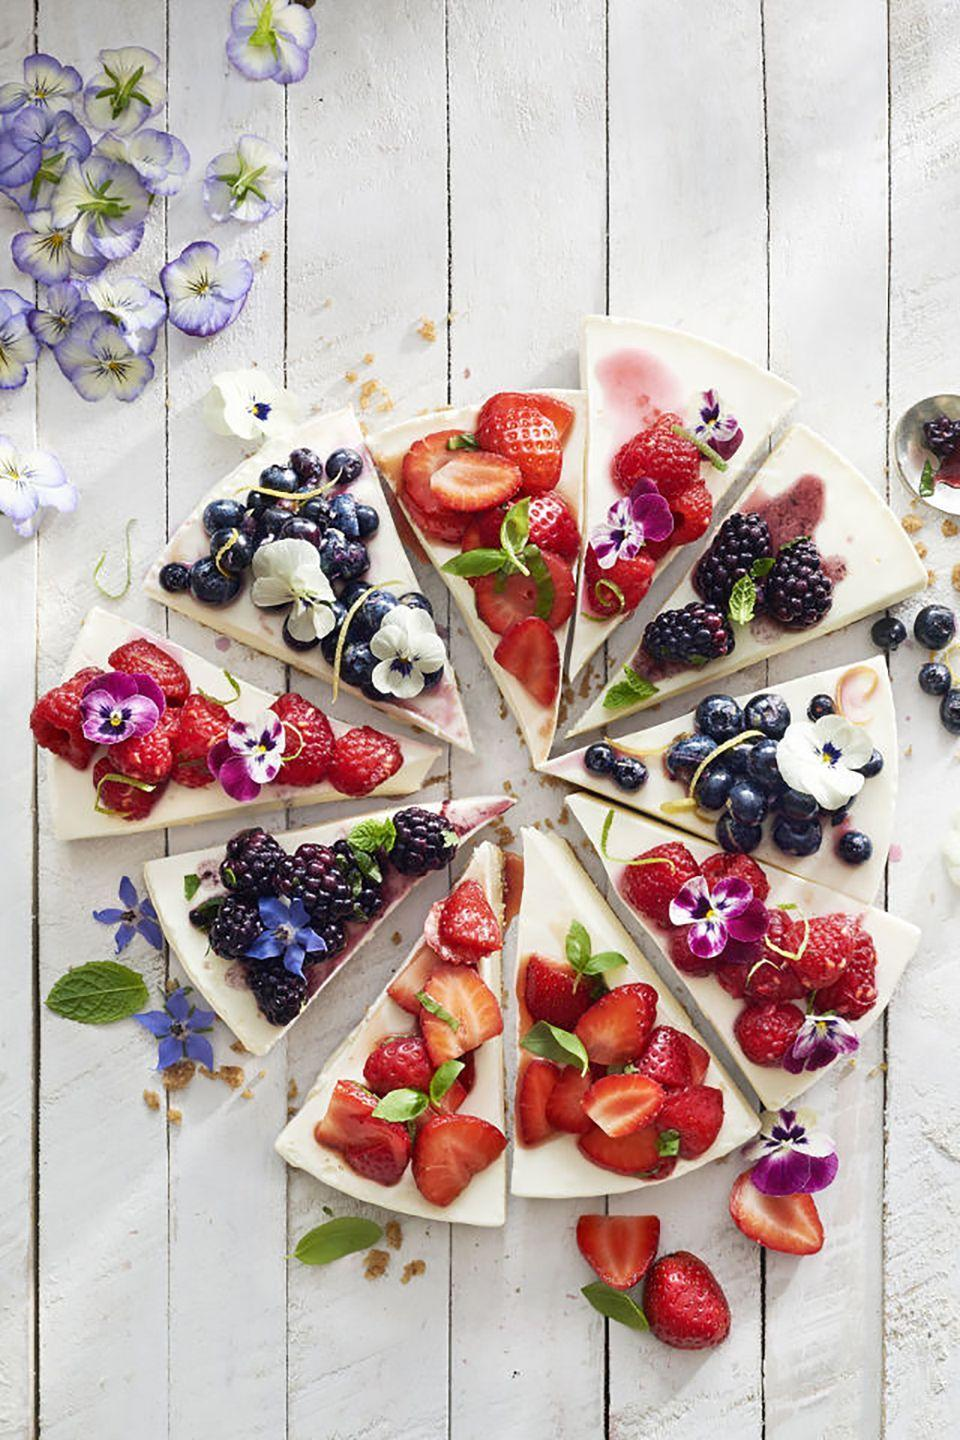 "<p><span class=""redactor-unlink"">A classic cheesecake is good, but a cheesecake topped with strawberries, blueberries, and raspberries is better. This cake makes for an stunning centerpiece <em>and</em> Mom will also get to choose her favorite fruit flavor.</span></p><p><strong><a href=""https://www.countryliving.com/food-drinks/recipes/a41977/no-bake-cheesecake-recipe/"" rel=""nofollow noopener"" target=""_blank"" data-ylk=""slk:Get the recipe"" class=""link rapid-noclick-resp"">Get the recipe</a>.</strong></p><p><a class=""link rapid-noclick-resp"" href=""https://go.redirectingat.com?id=74968X1596630&url=https%3A%2F%2Fwww.etsy.com%2Flisting%2F619363482%2Fedible-flowers-pansy-mix&sref=https%3A%2F%2Fwww.countryliving.com%2Ffood-drinks%2Fg3185%2Fmothers-day-cakes%2F"" rel=""nofollow noopener"" target=""_blank"" data-ylk=""slk:SHOP EDIBLE FLOWERS"">SHOP EDIBLE FLOWERS</a><br></p>"